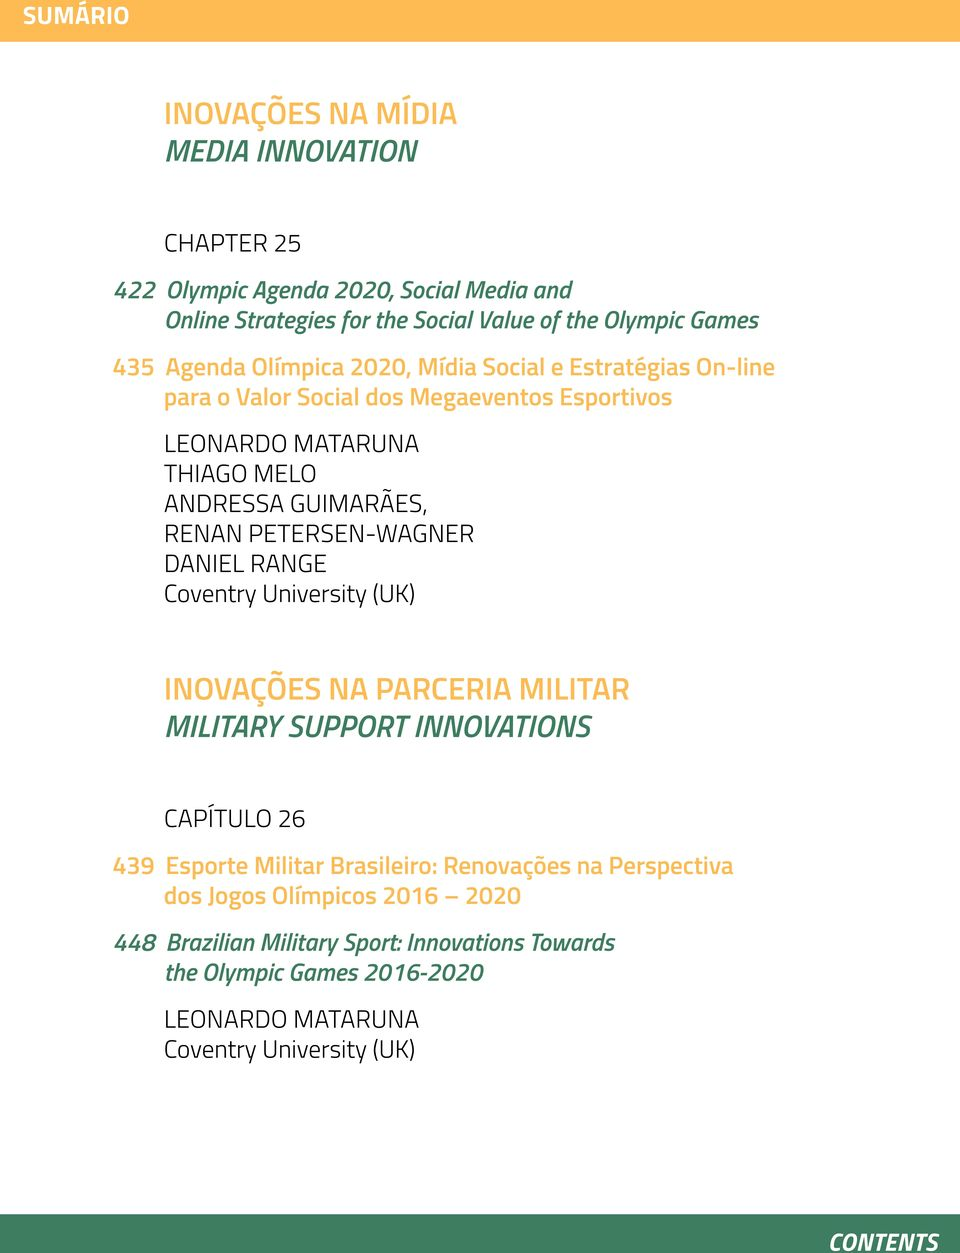 PETERSEN-WAGNER DANIEL RANGE Coventry University (UK) INOVAÇÕES NA PARCERIA MILITAR MILITARY SUPPORT INNOVATIONS CAPÍTULO 26 439 Esporte Militar Brasileiro: